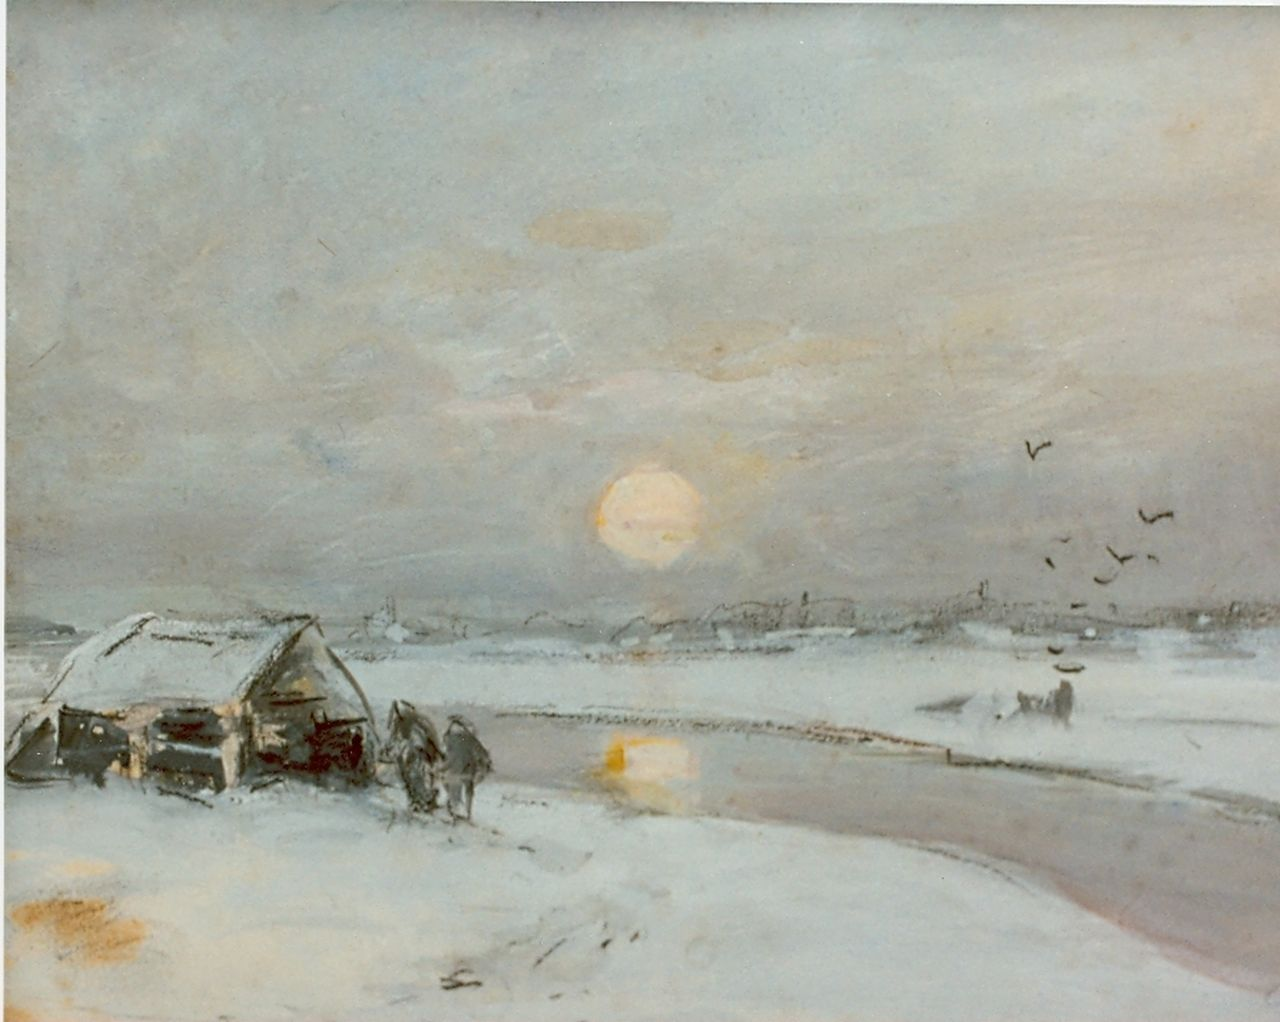 Apol L.F.H.  | Lodewijk Franciscus Hendrik 'Louis' Apol, Frozen canal at sunset, watercolour on paper 16.5 x 21.0 cm, signed l.l.